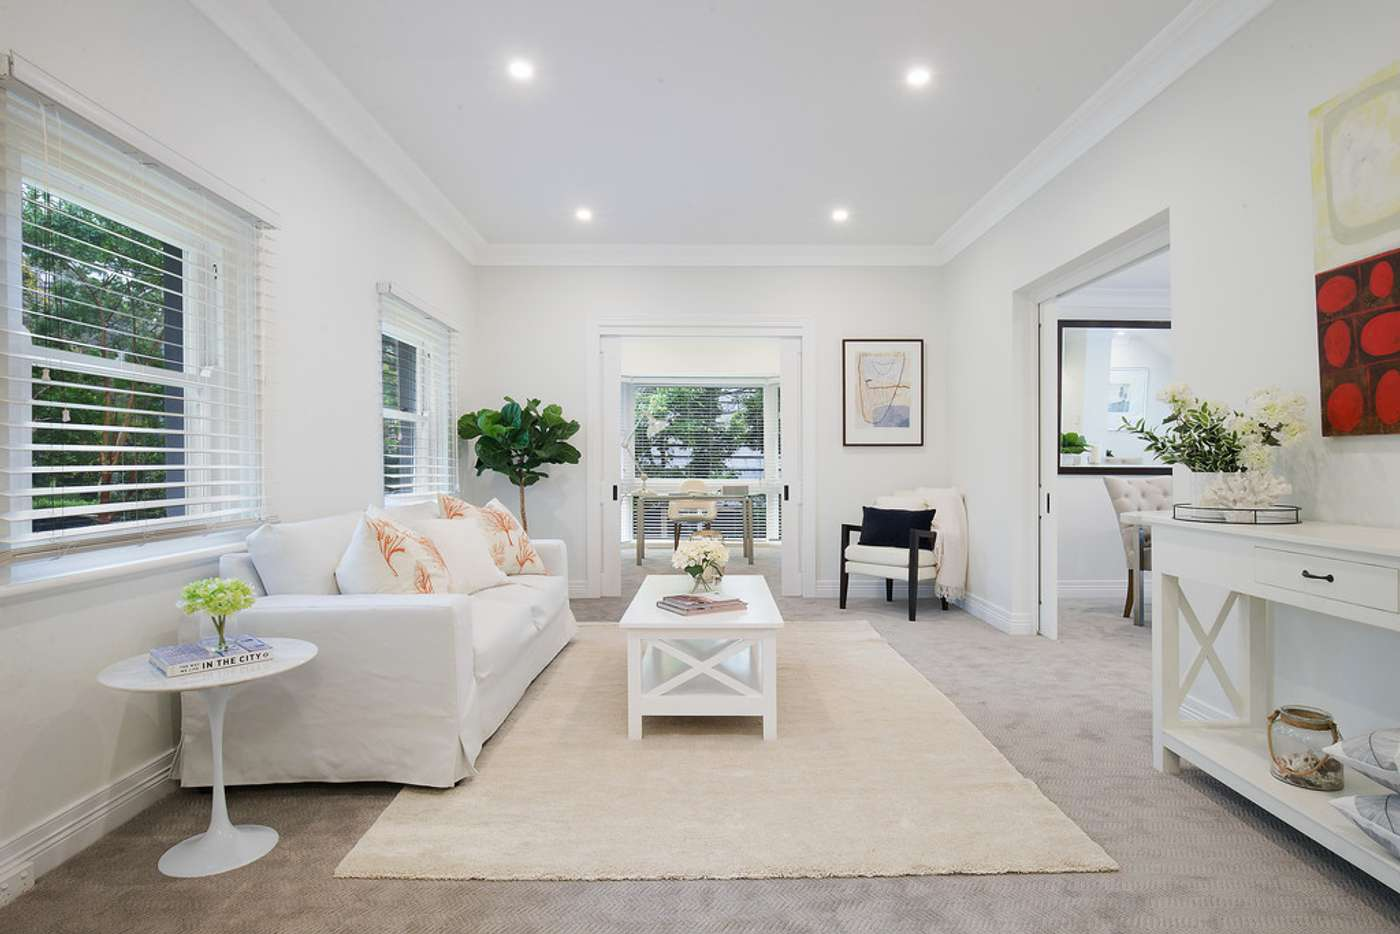 Main view of Homely house listing, 31 Selwyn St, Pymble NSW 2073